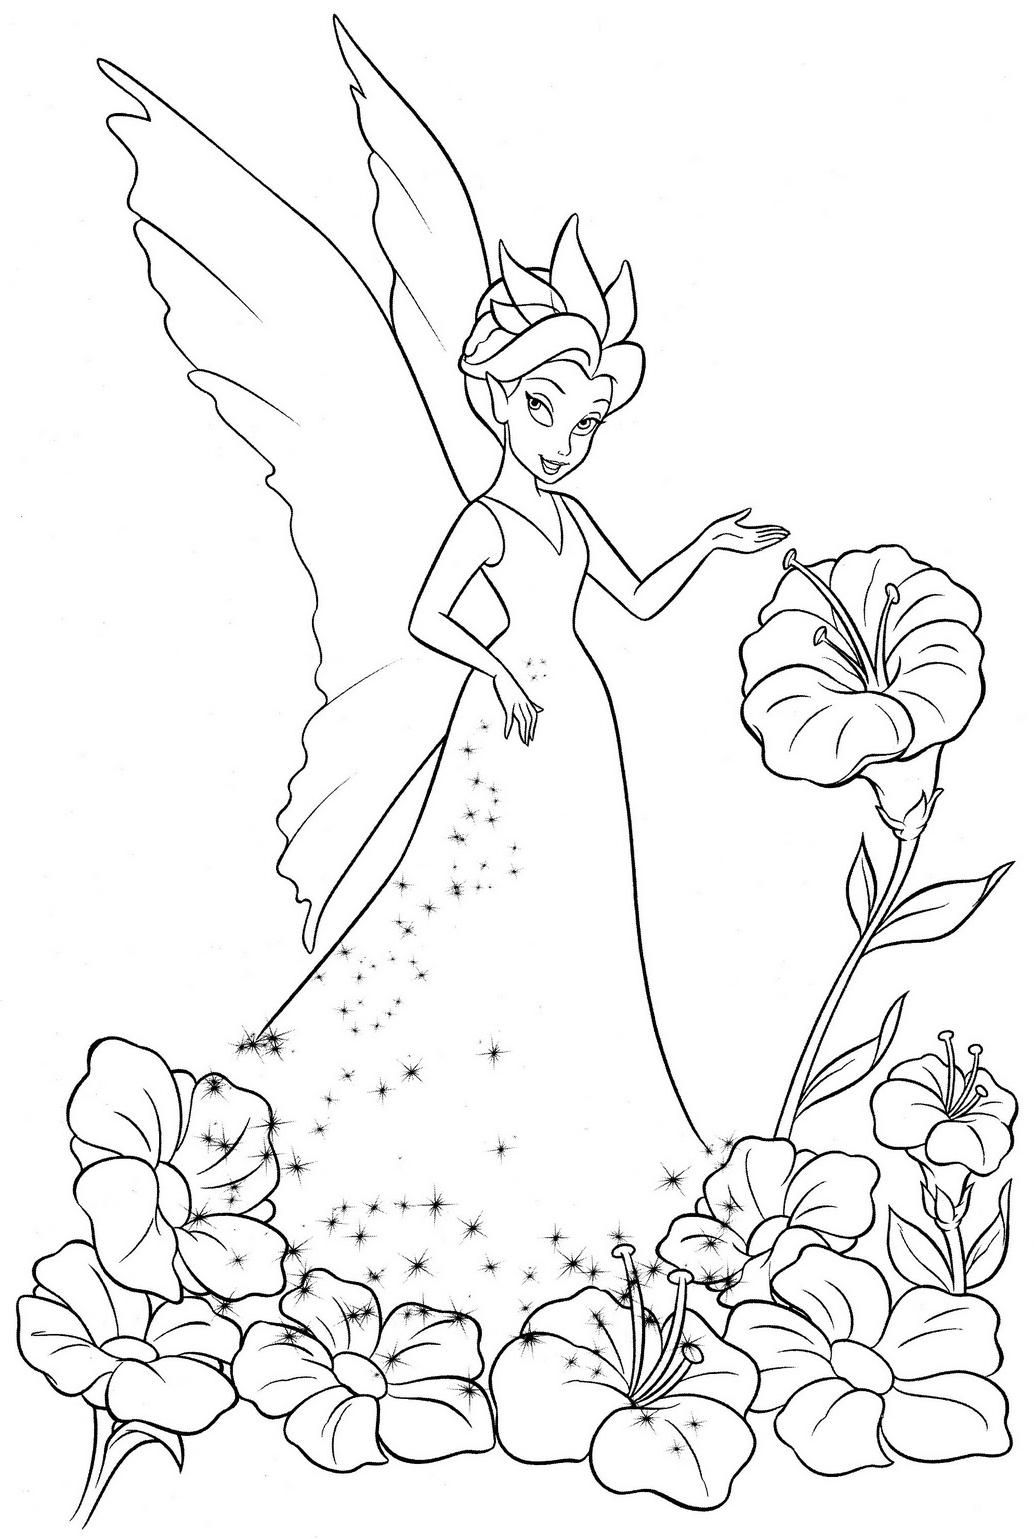 Coloring pages of tinkerbell and friends - Coloring Pages ...